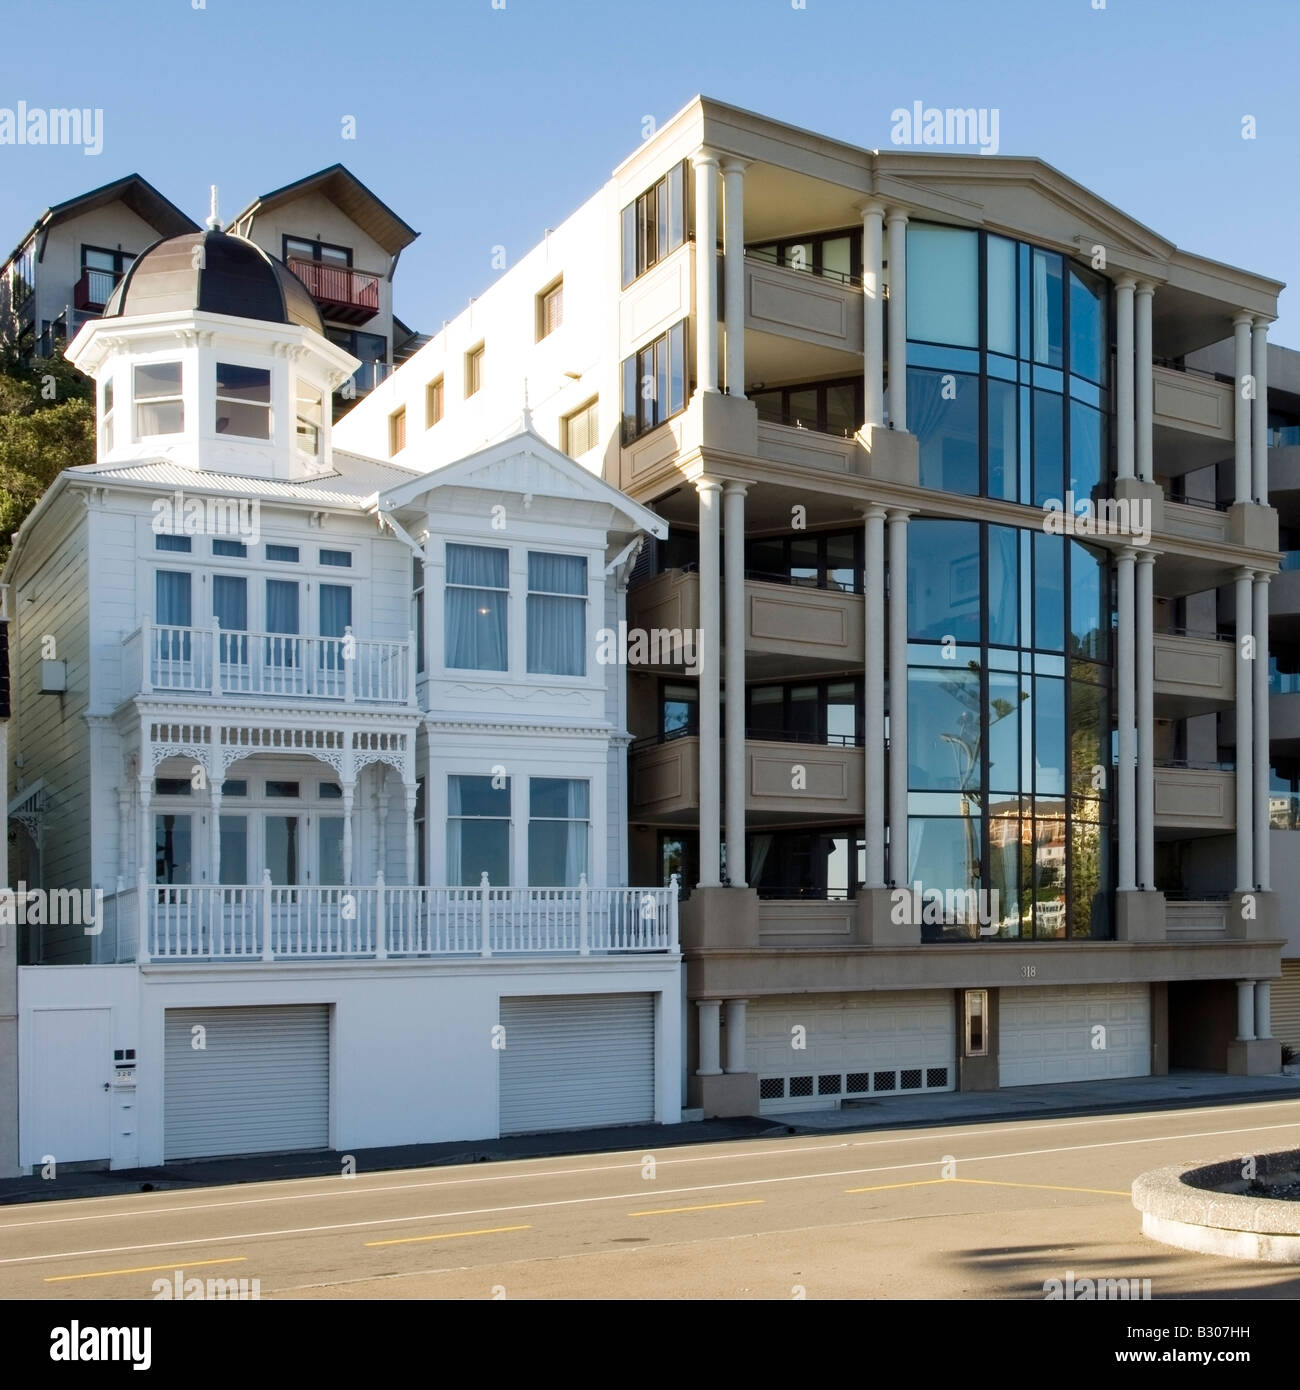 Harmonious blend of architectural styles, Wellington Harbour, New Zealand - Stock Image